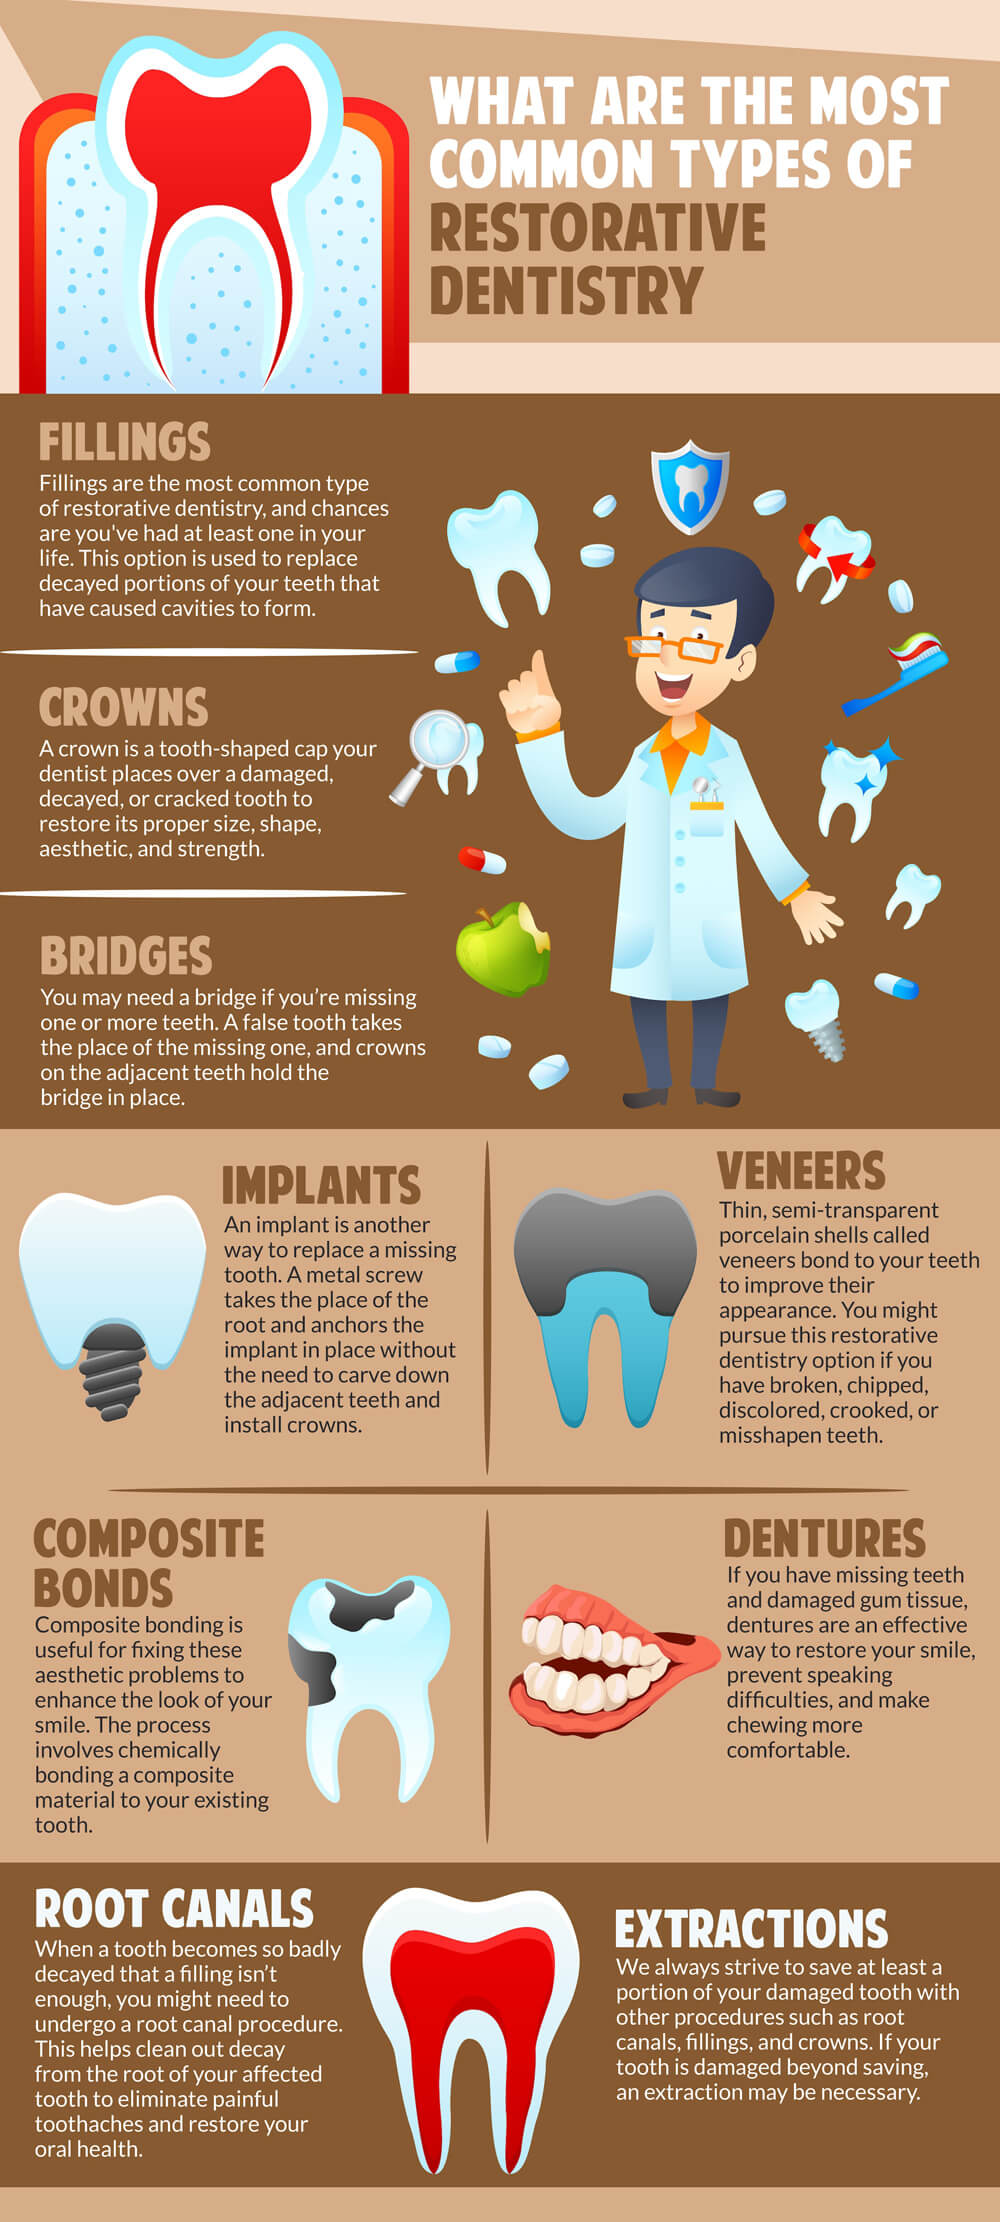 What are the Most Common Types of Restorative Dentistry?